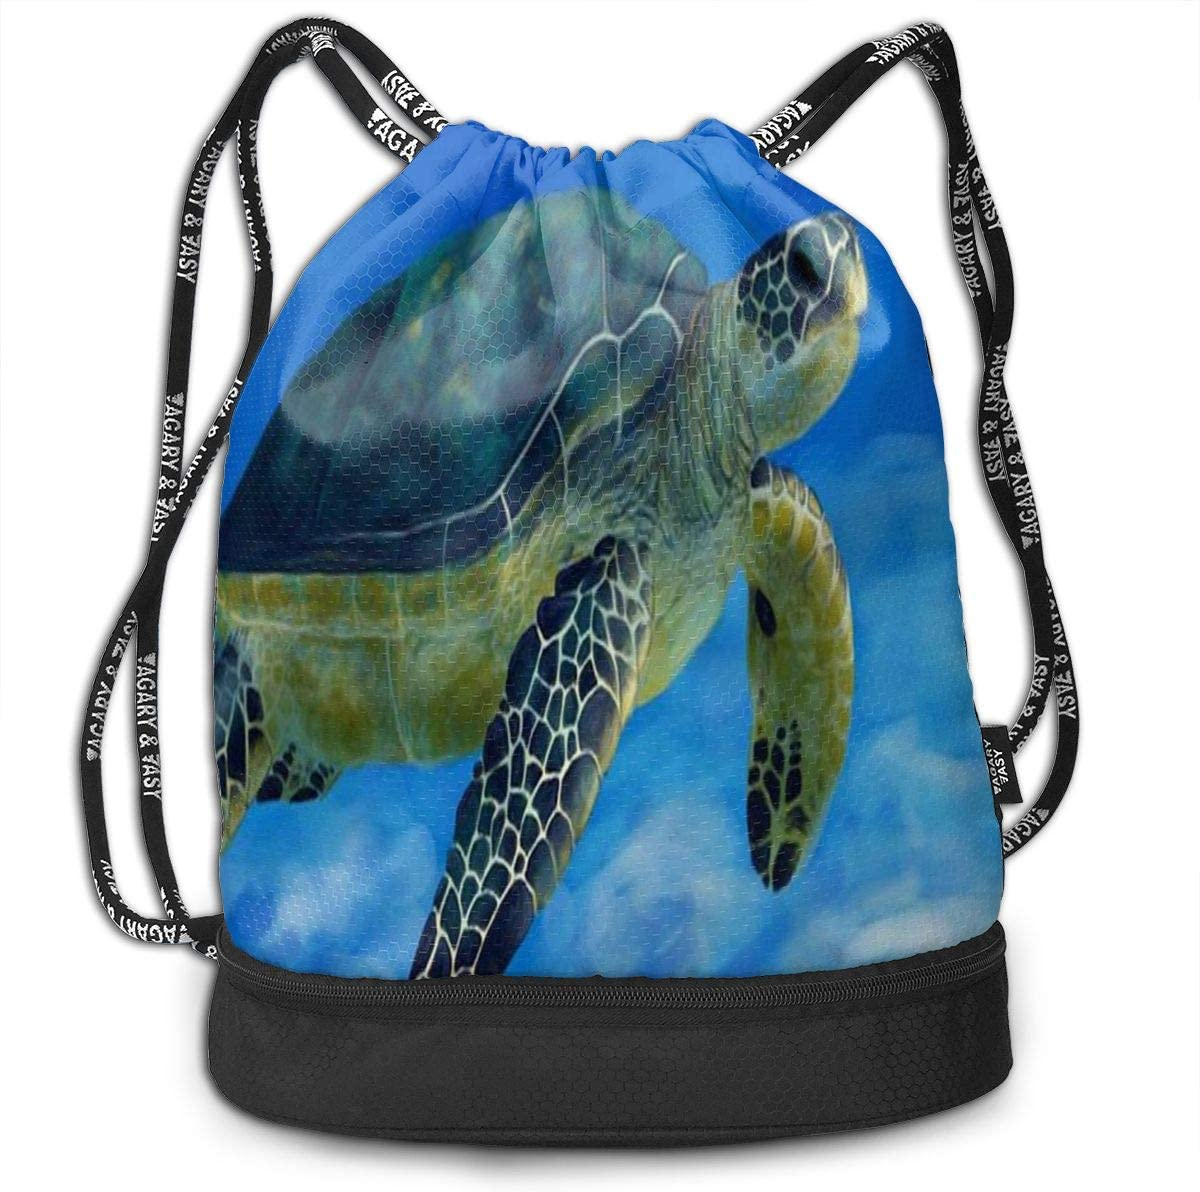 Unisex Bundle Backpack Sea Turtle Fly In The Sky Travel Durable Large Space Cool Waterproof Drawstring Bag